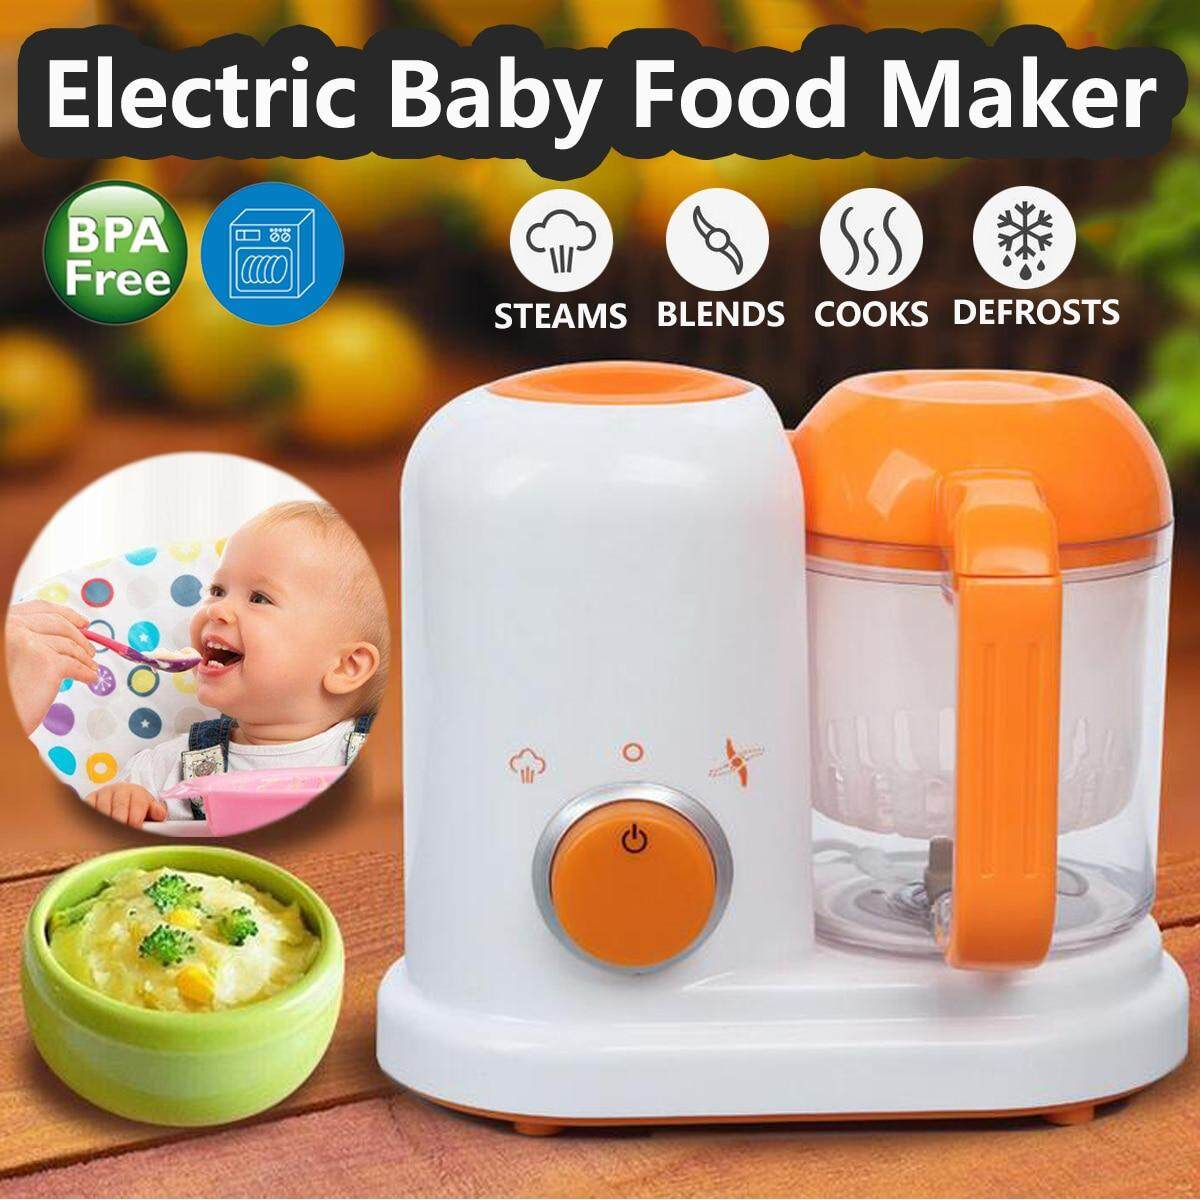 Electric Baby Food Maker All In One Toddler Blenders Steamer Processor BPA Free Food-Graded PP EU AC 200-250V Steam Food Safe image on snachetto.com